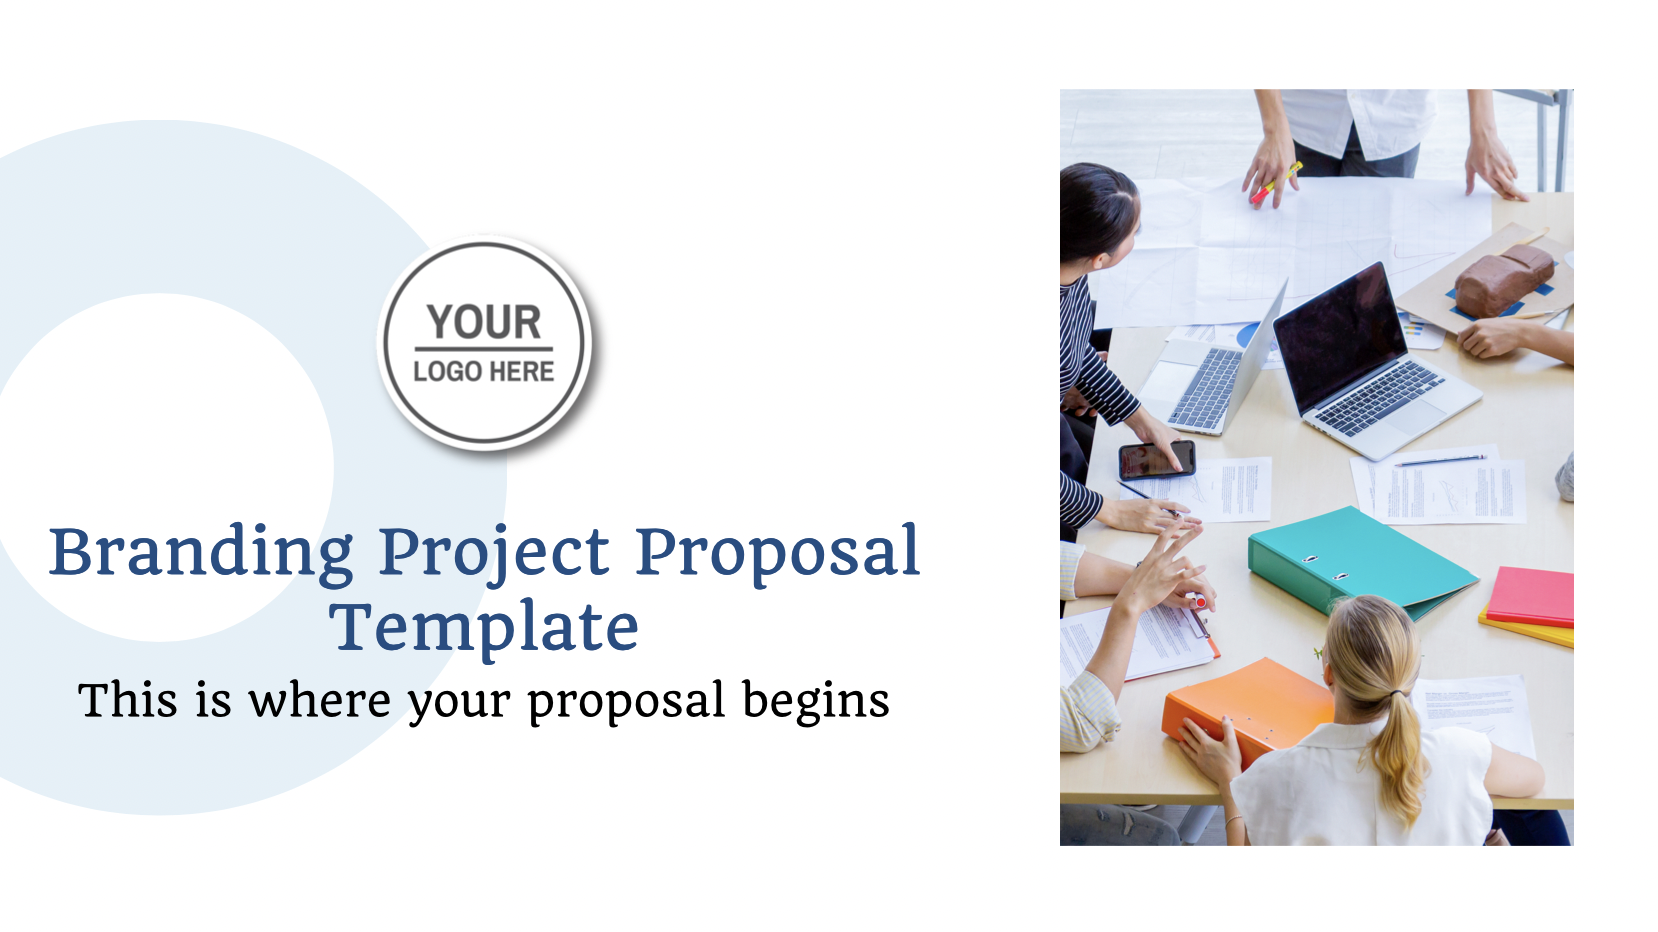 The proposal document may also be thought of as a marketing document that will help to maintain and enforce a favorable connection between project stakeholders and your company.